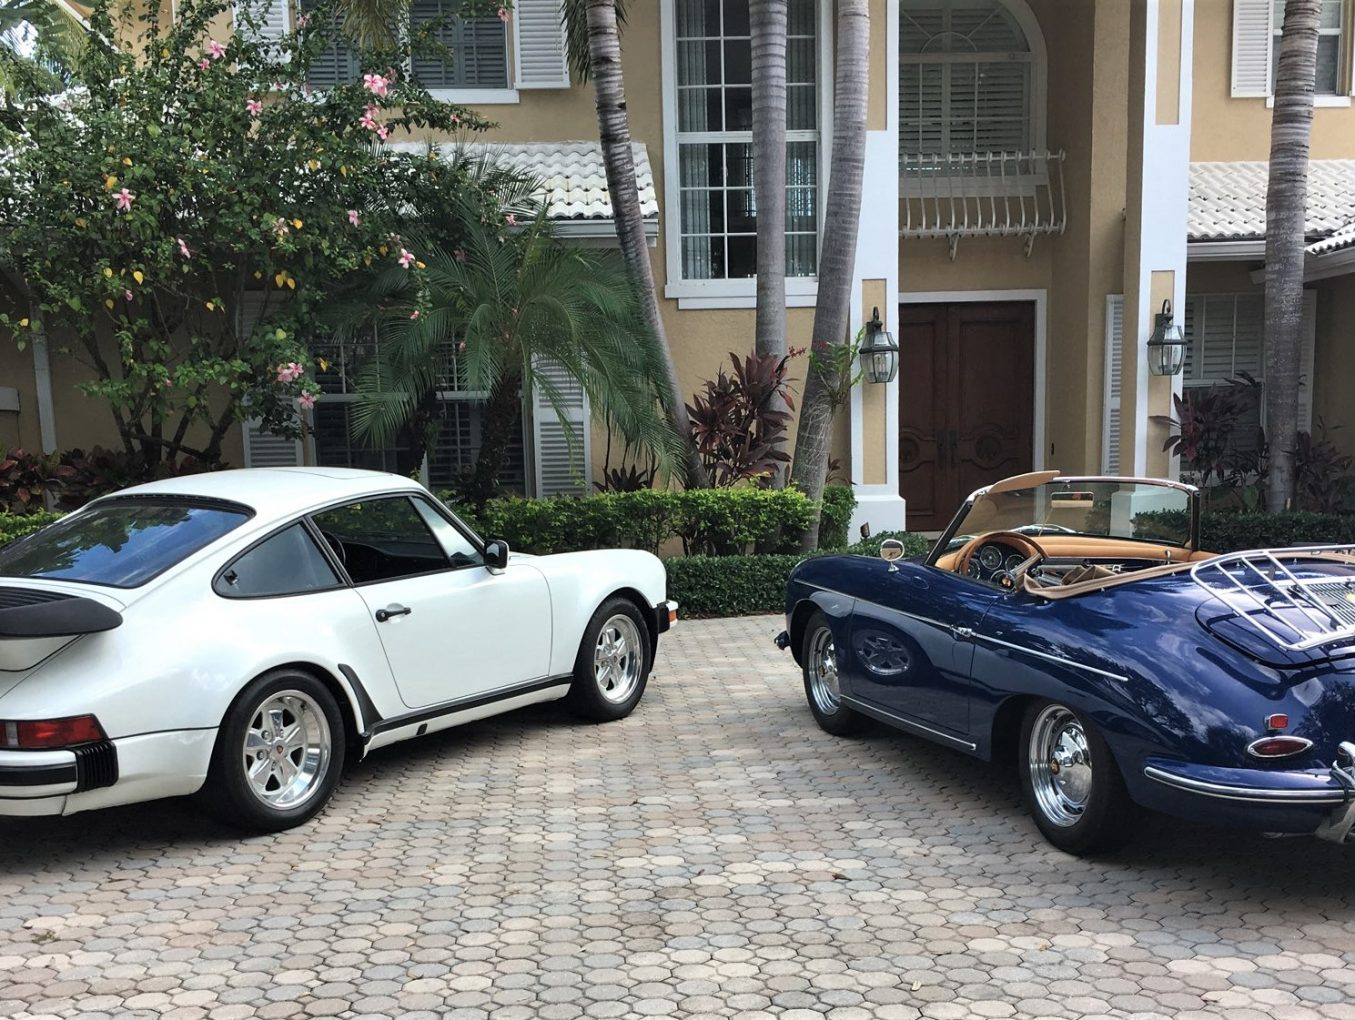 1986 Porsche 930 Coupe - 45K California Miles